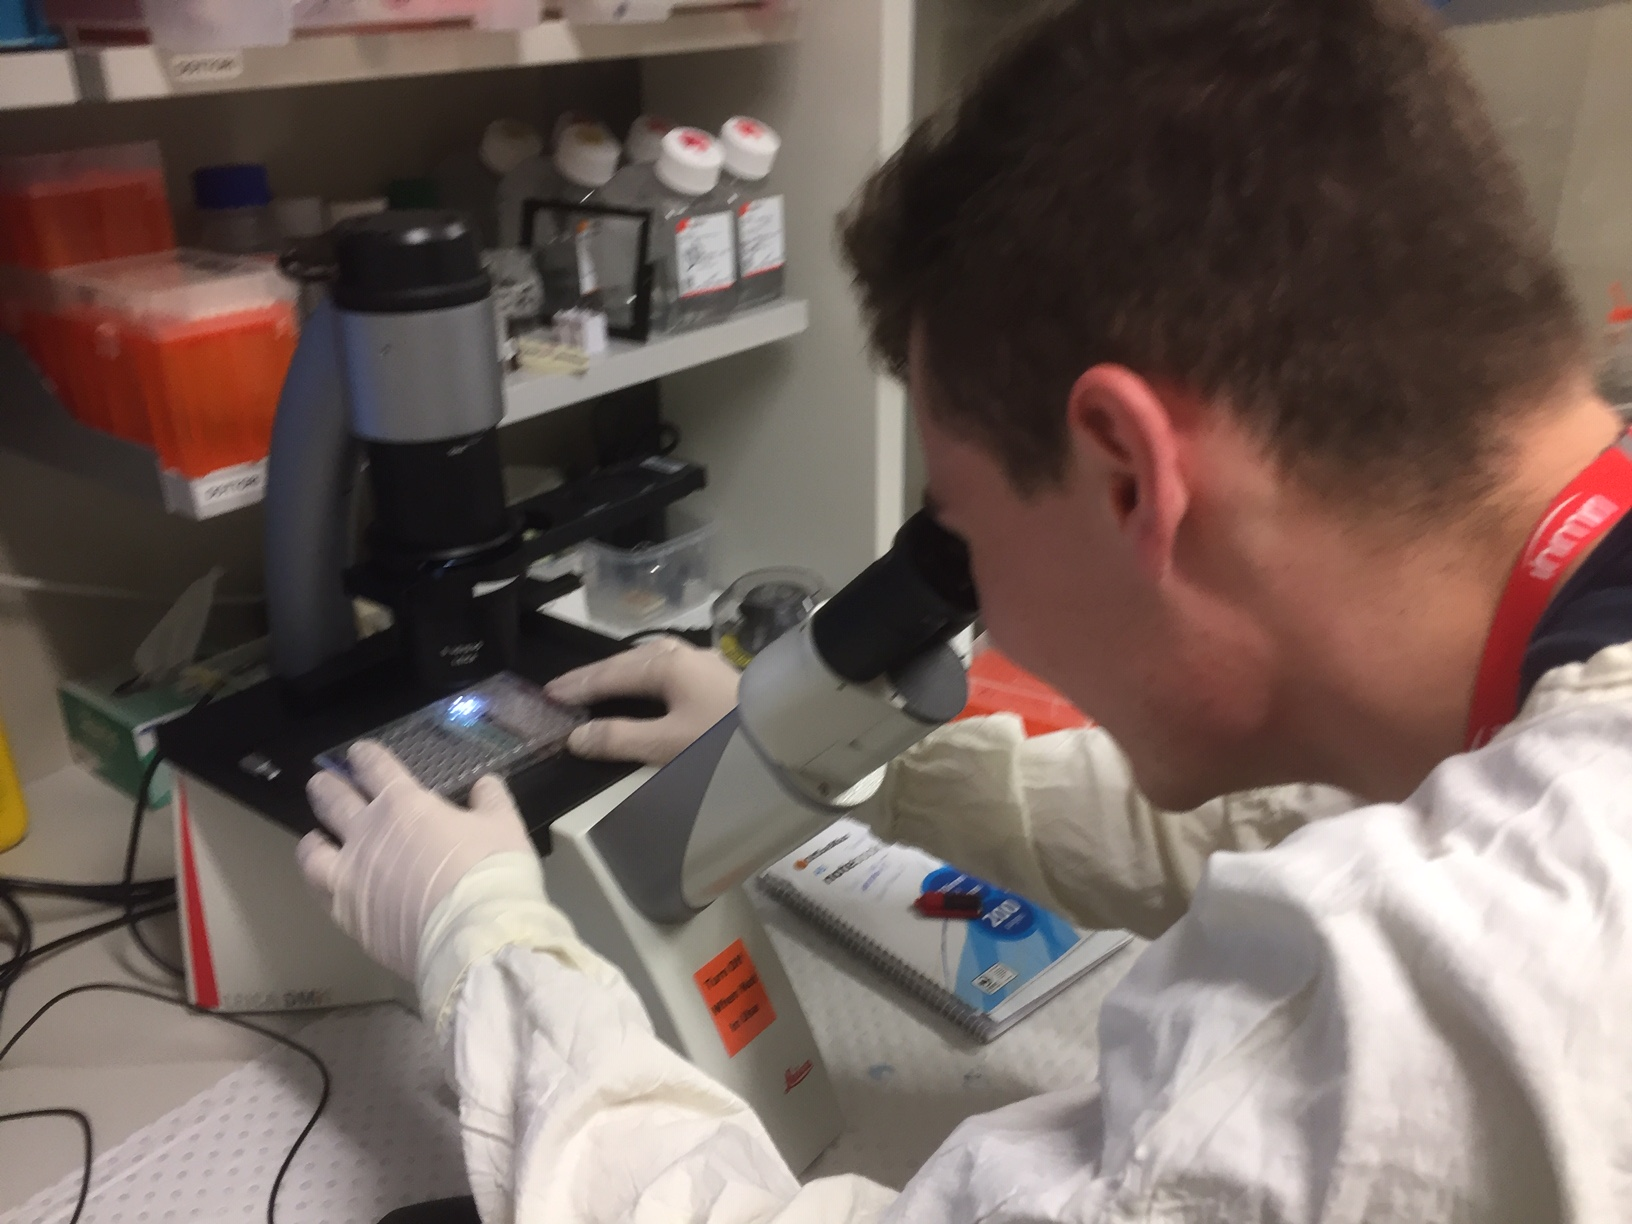 Mitchell examines specimens under the microscope